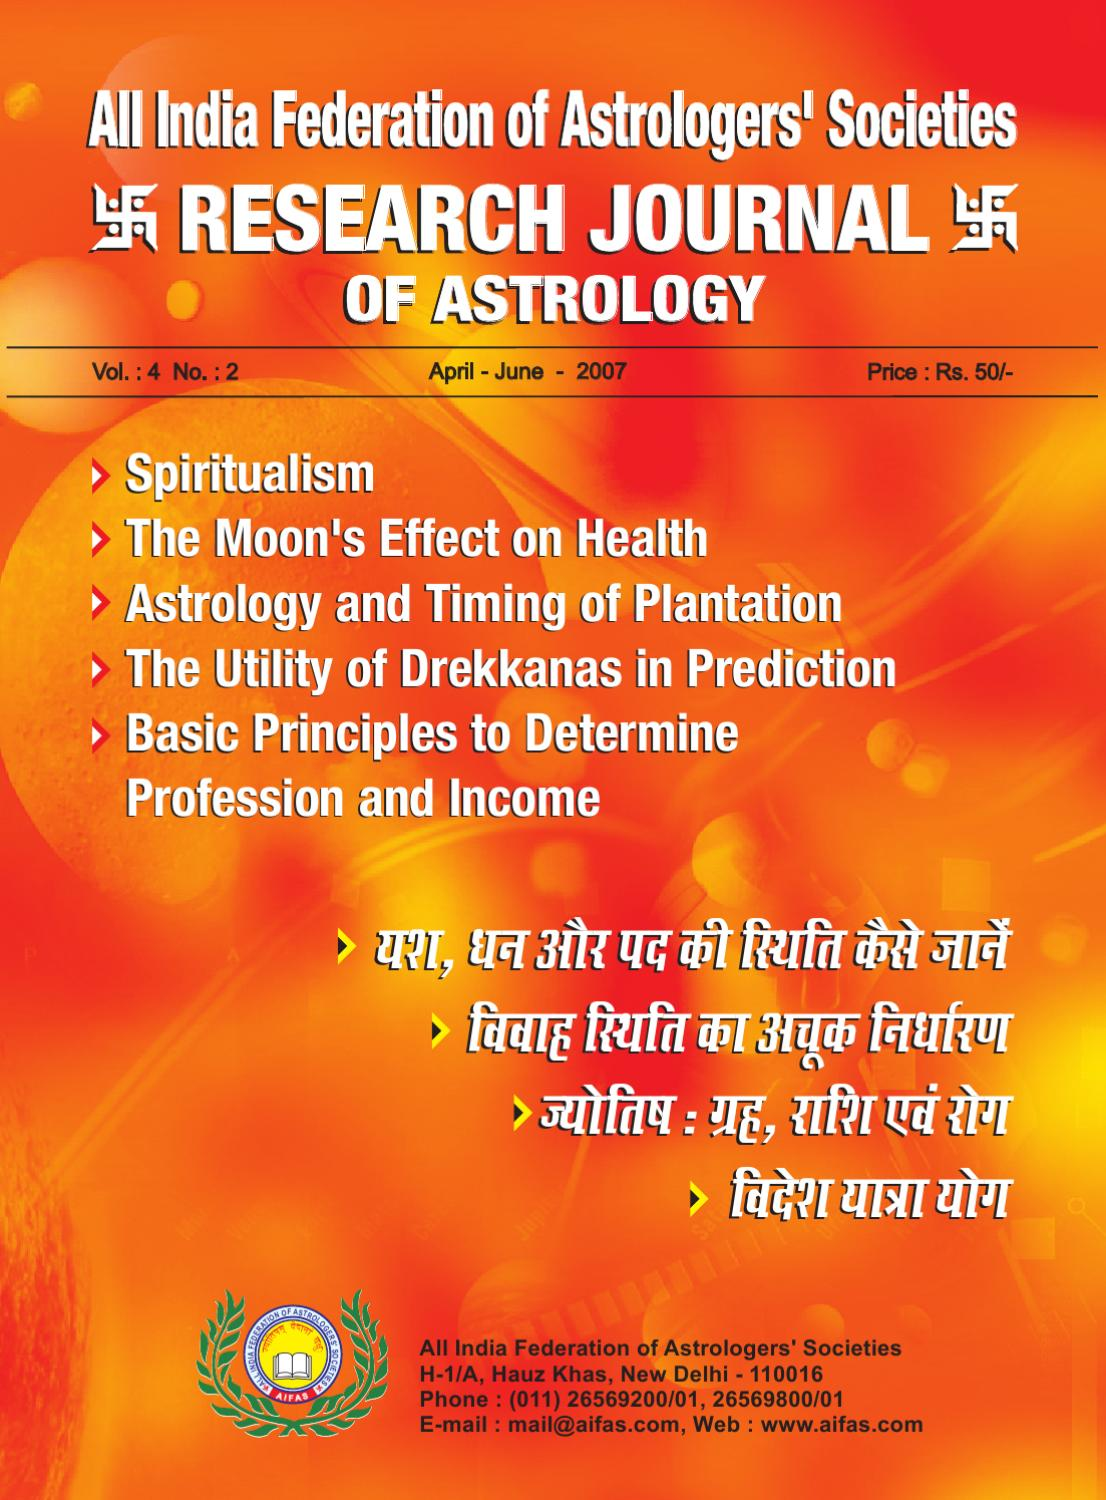 Research journal july sep 2008 by future samachar issuu research journal april june 2007 nvjuhfo Images